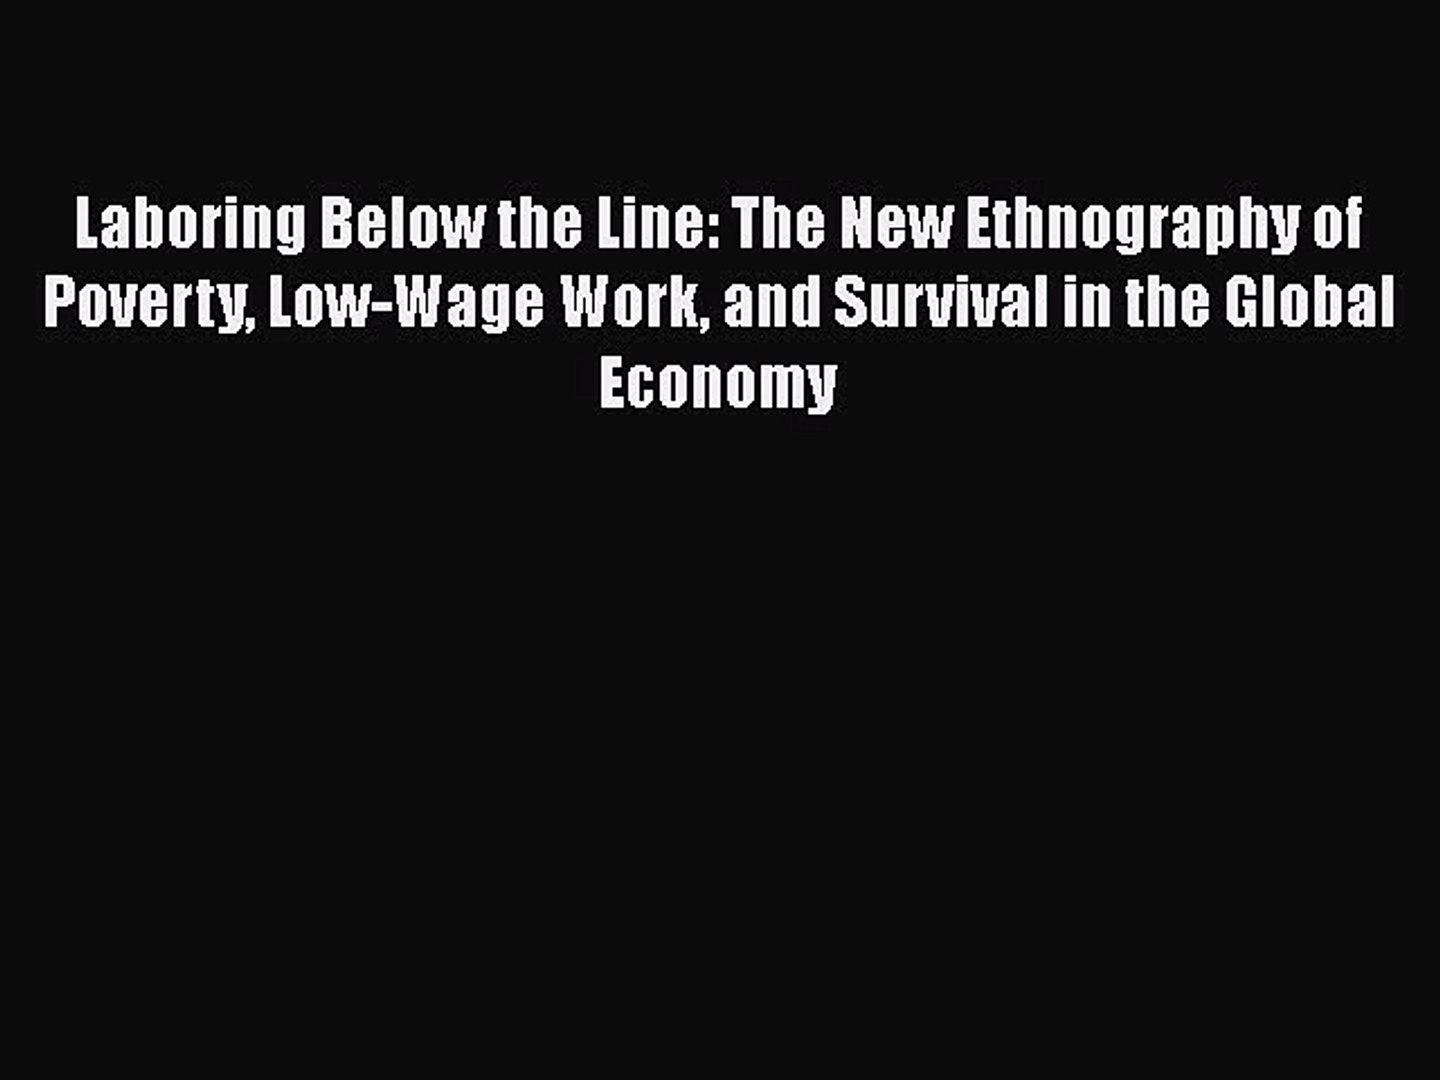 [Read] Laboring Below the Line: The New Ethnography of Poverty Low-Wage Work and Survival in